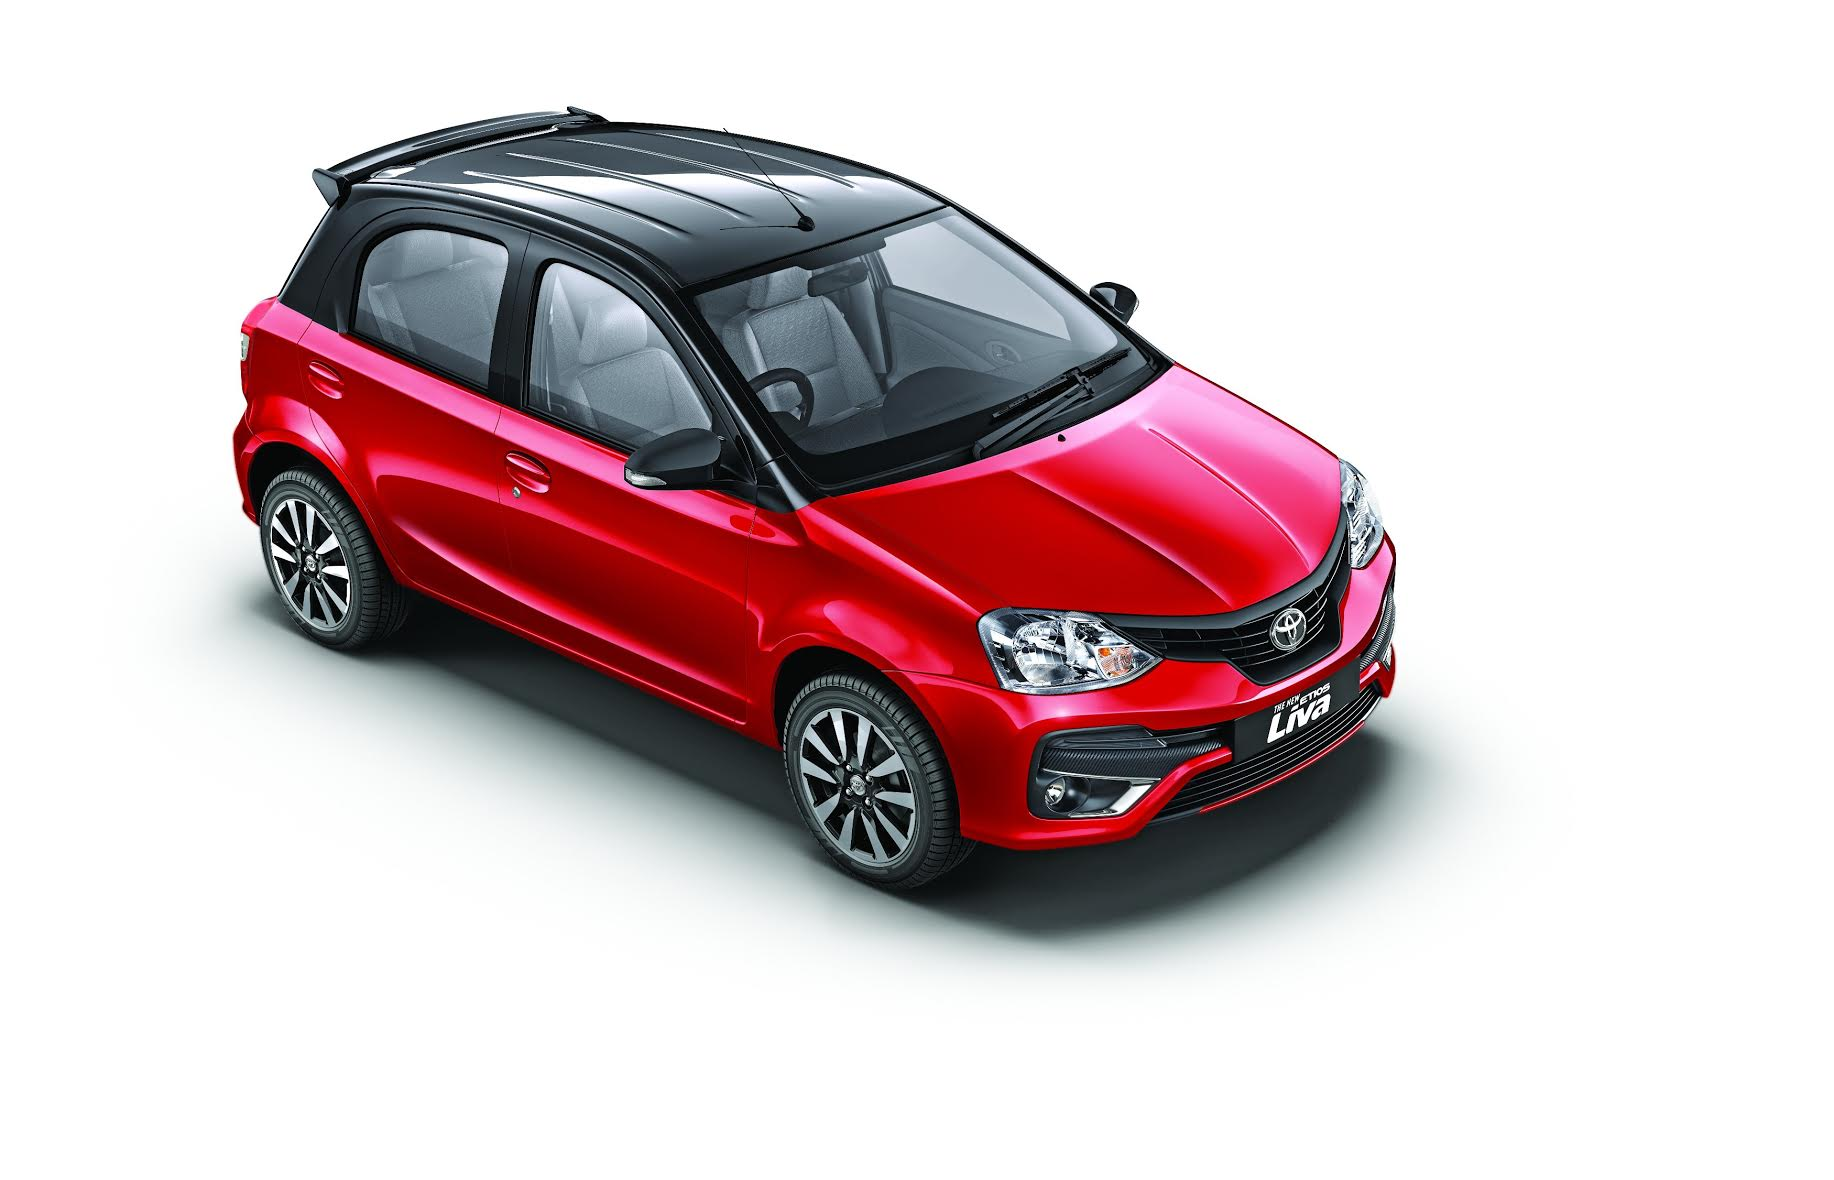 New Toyota Etios Liva Dual Tone Interiors Red Black